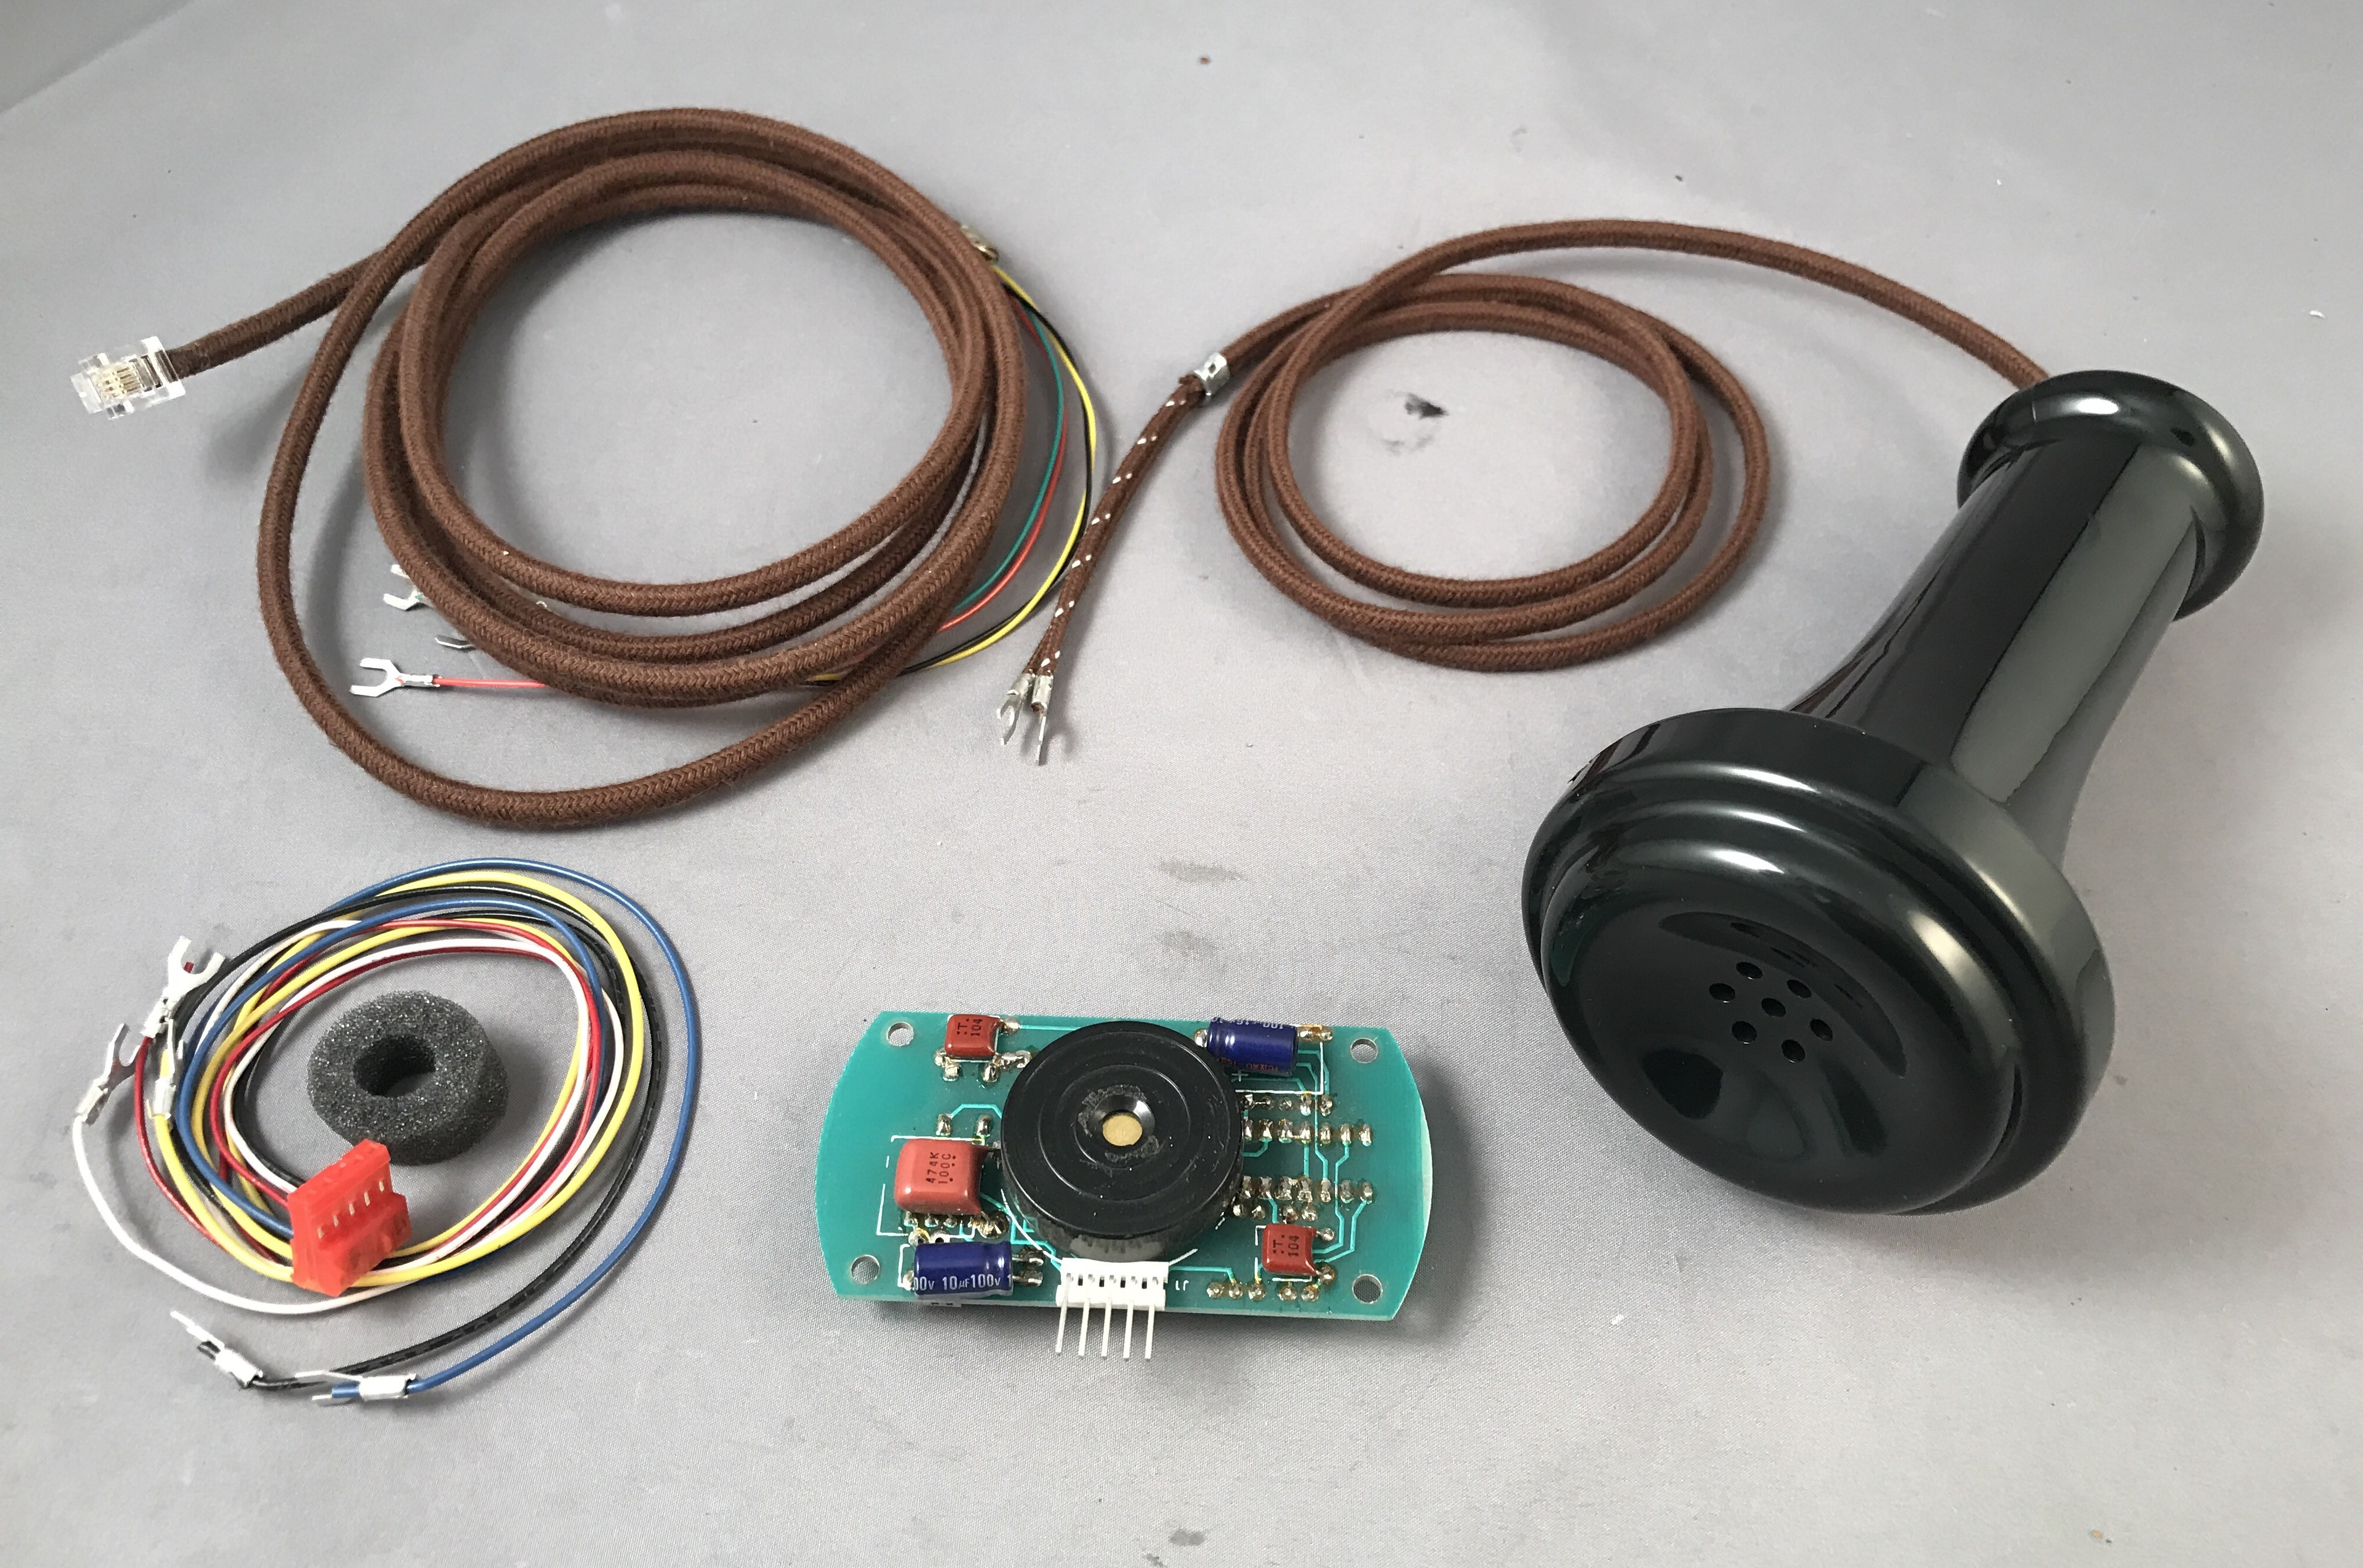 telephone handset wiring diagram gretsch 6120 cable best library candlestick phone candle